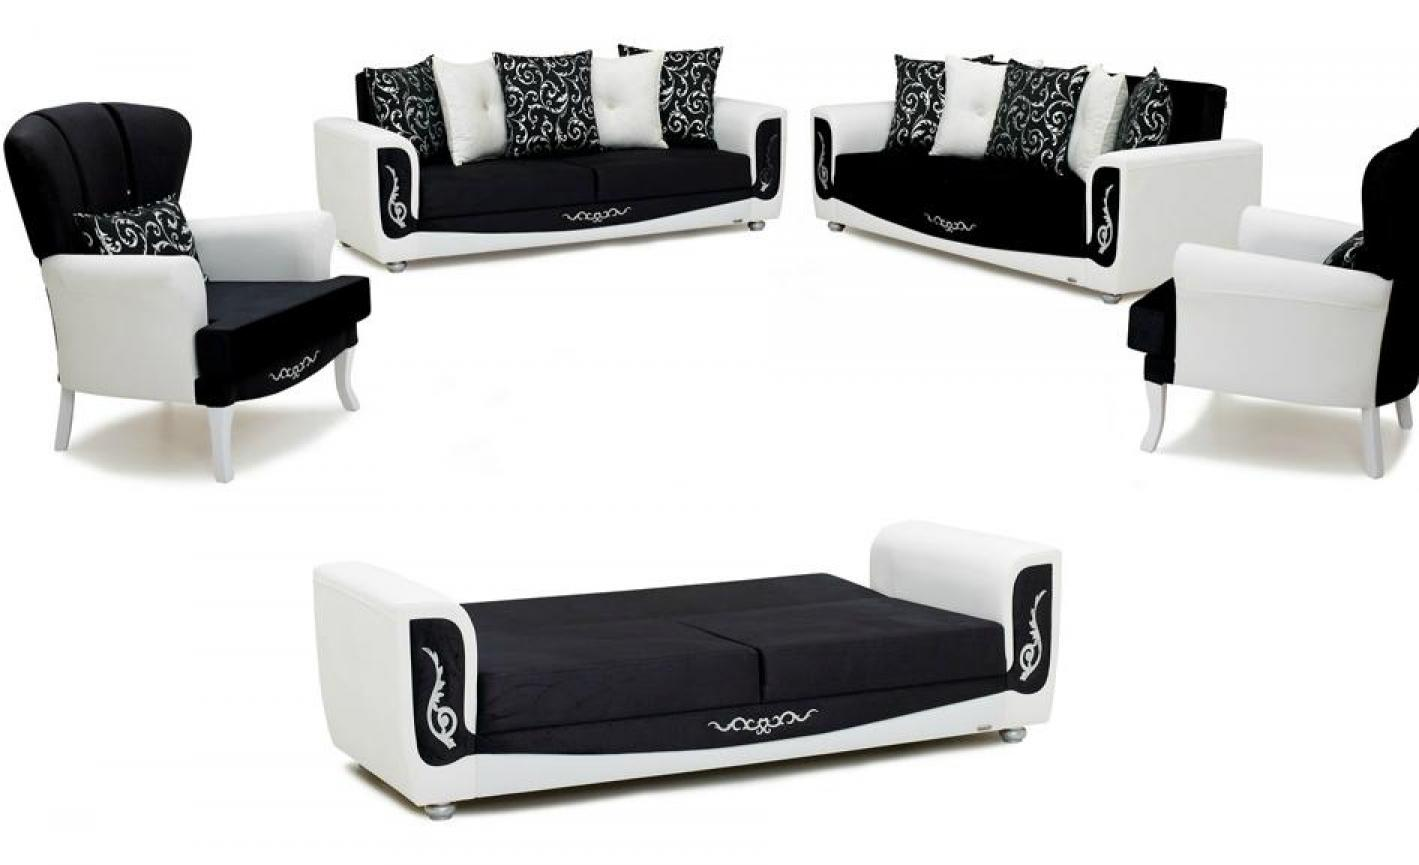 photos canap turque. Black Bedroom Furniture Sets. Home Design Ideas